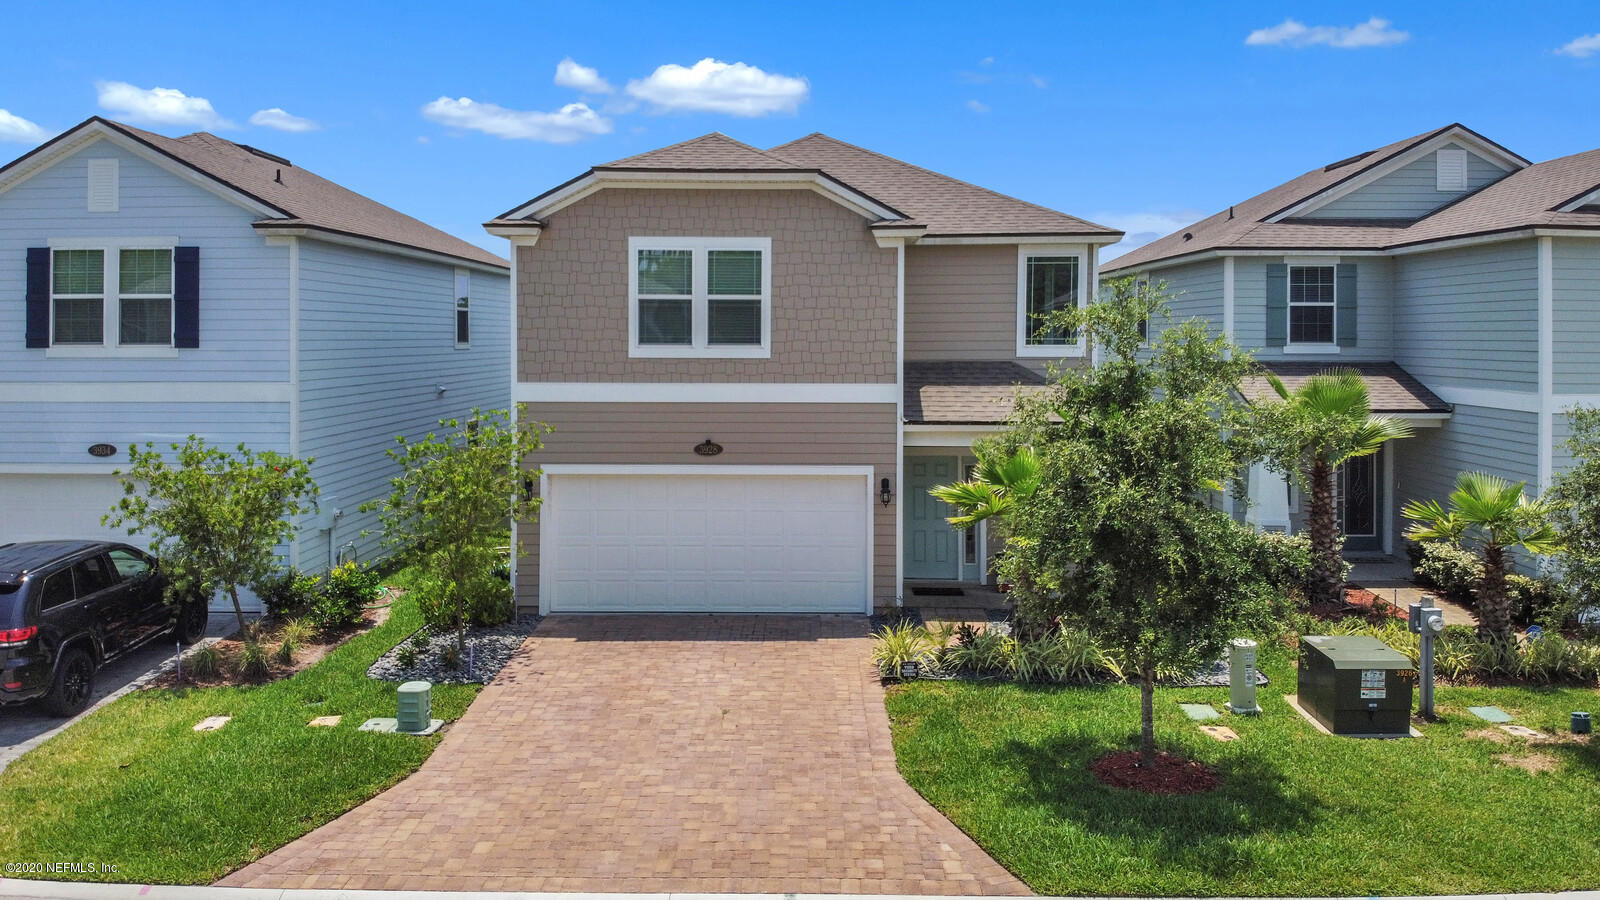 3928 Coastal Cove Cir Jacksonville, Fl 32224